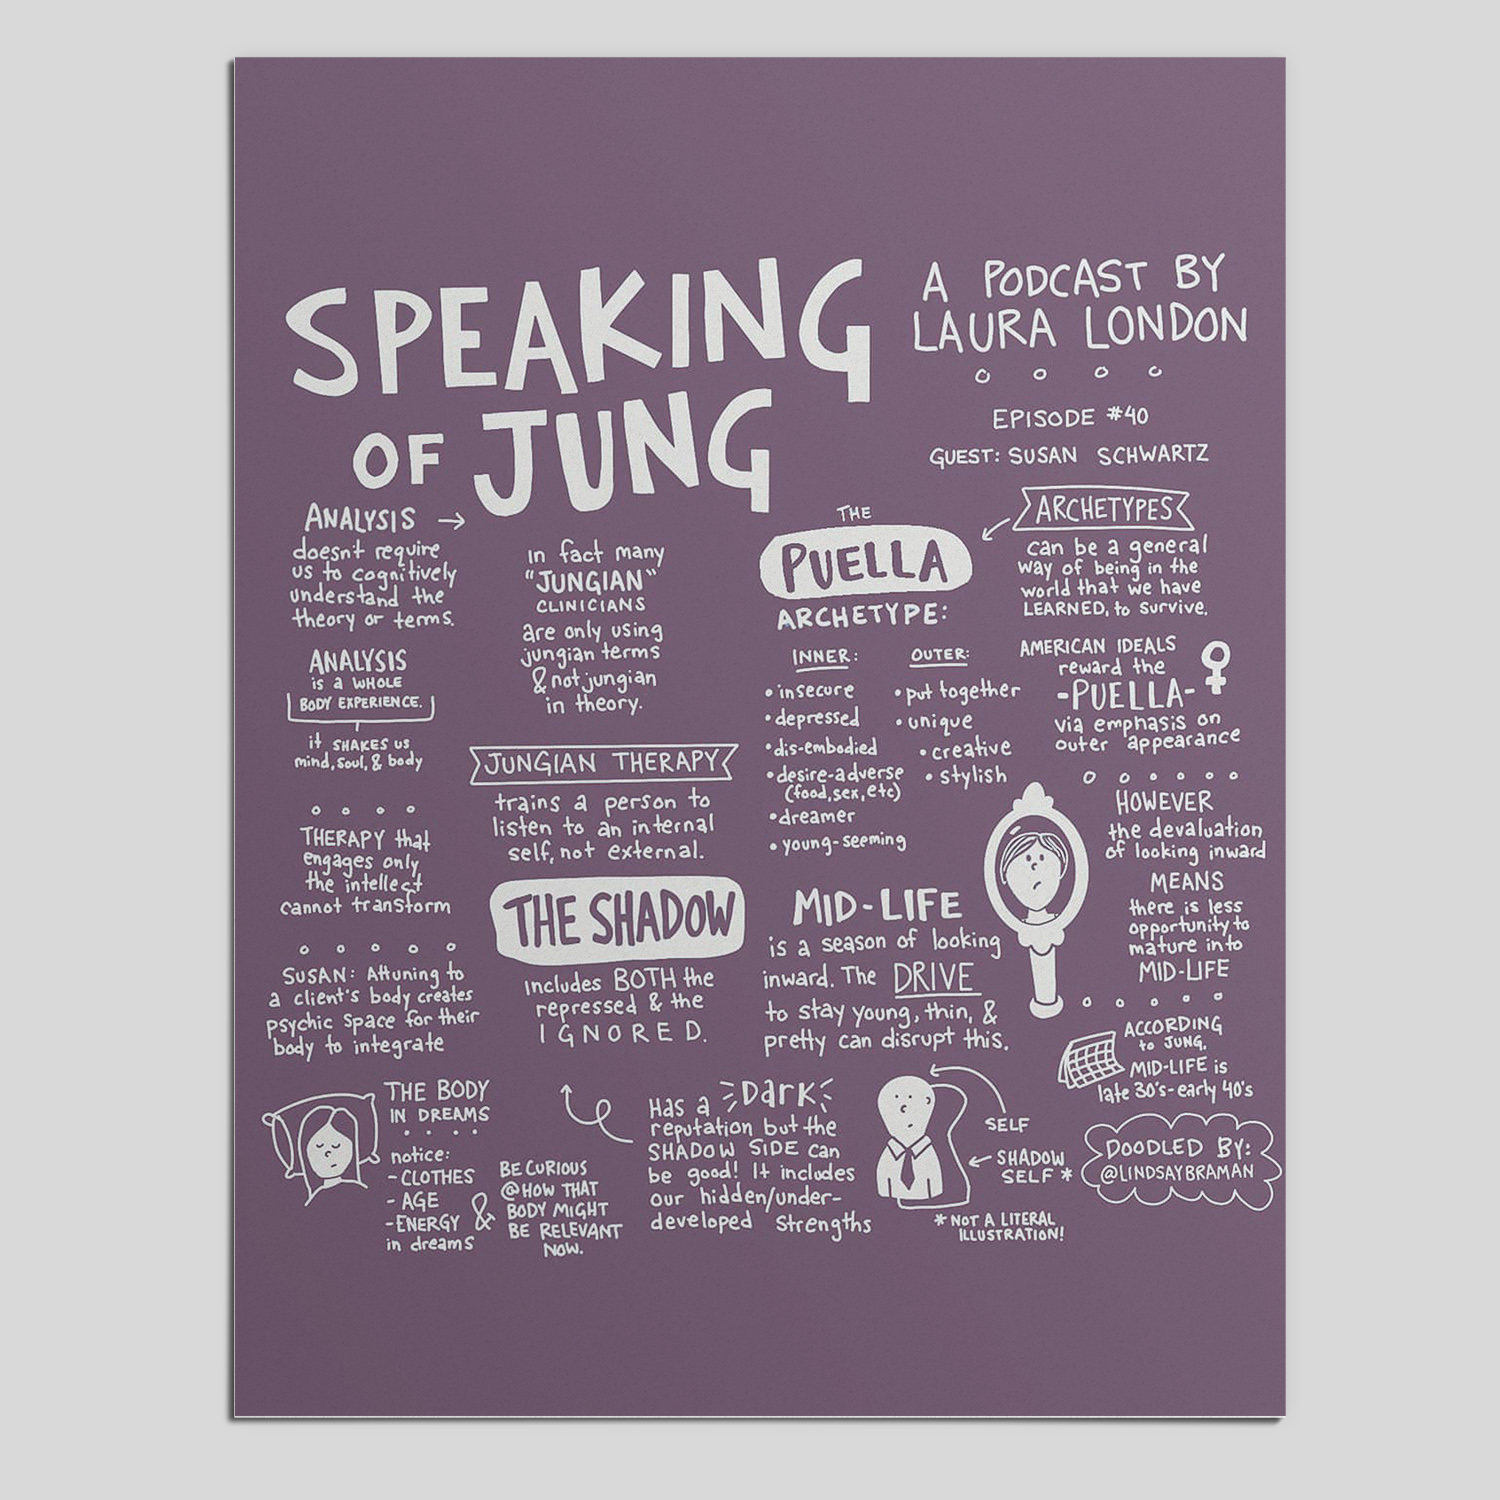 Sketchnote about Carl Jung